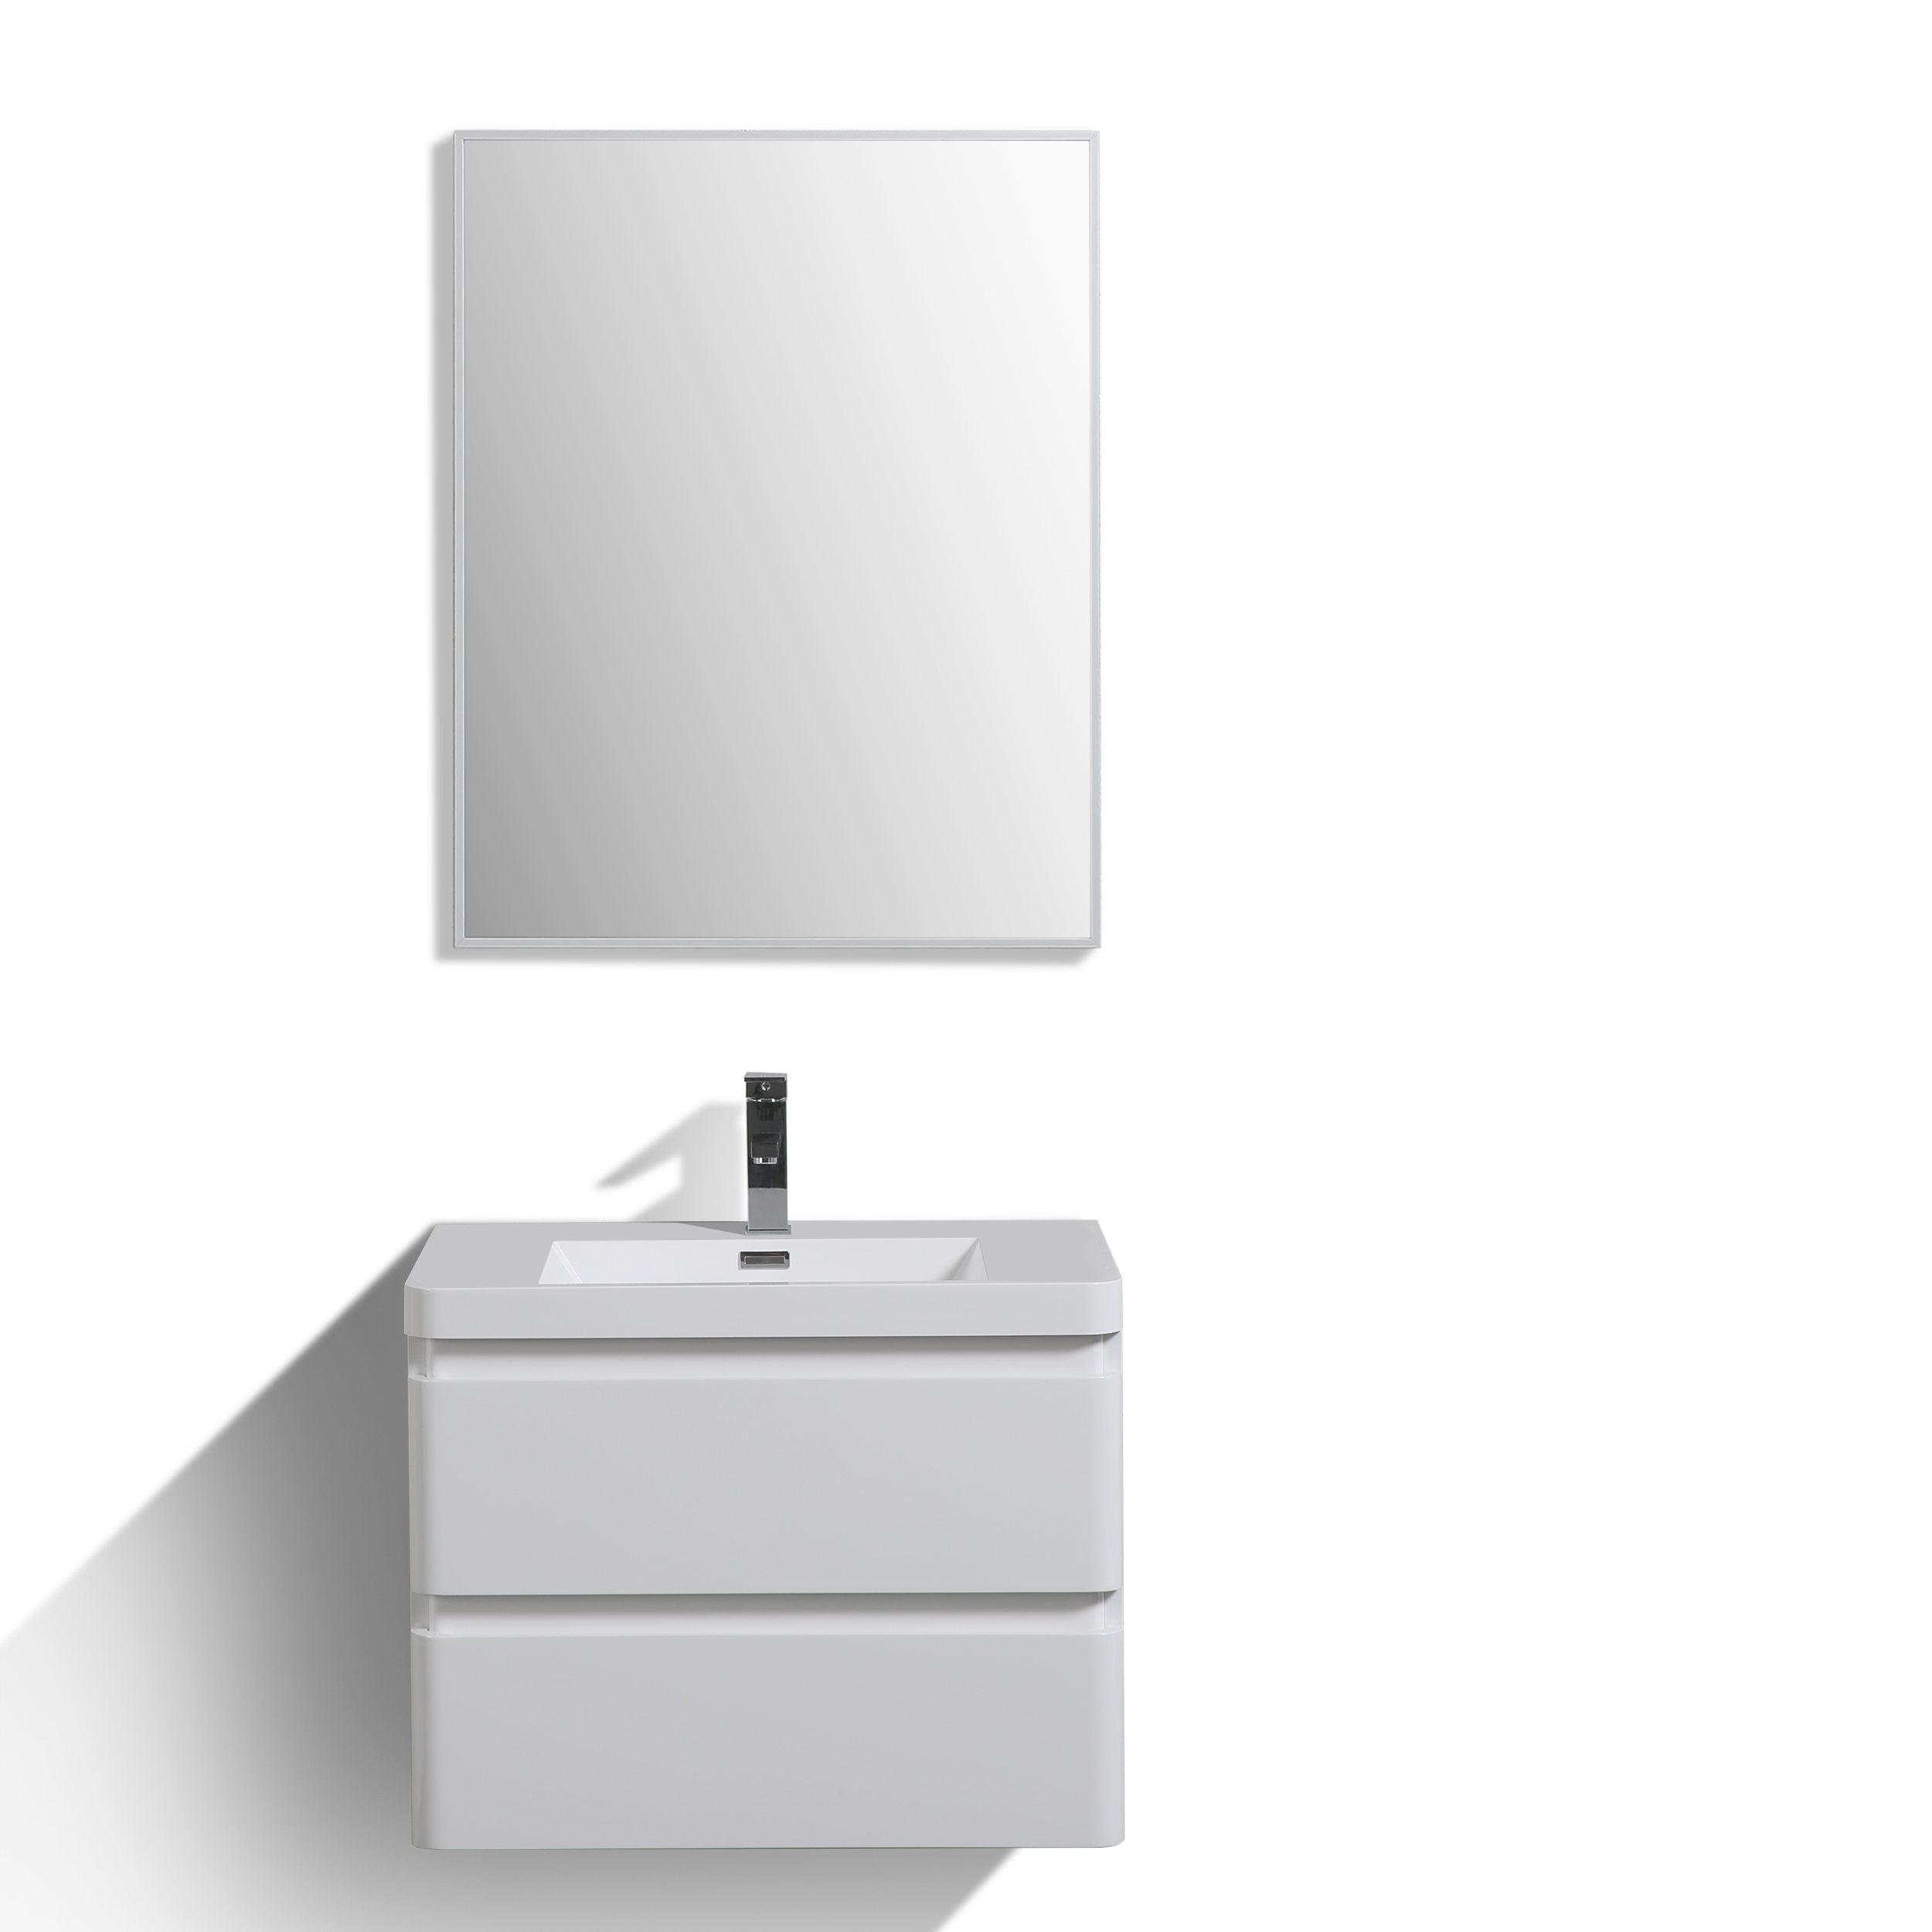 "EVVN760 30WH WM A Main - Eviva Smile 30"" White Wall Mount Modern Bathroom Vanity Set with Integrated White Acrylic Sink"